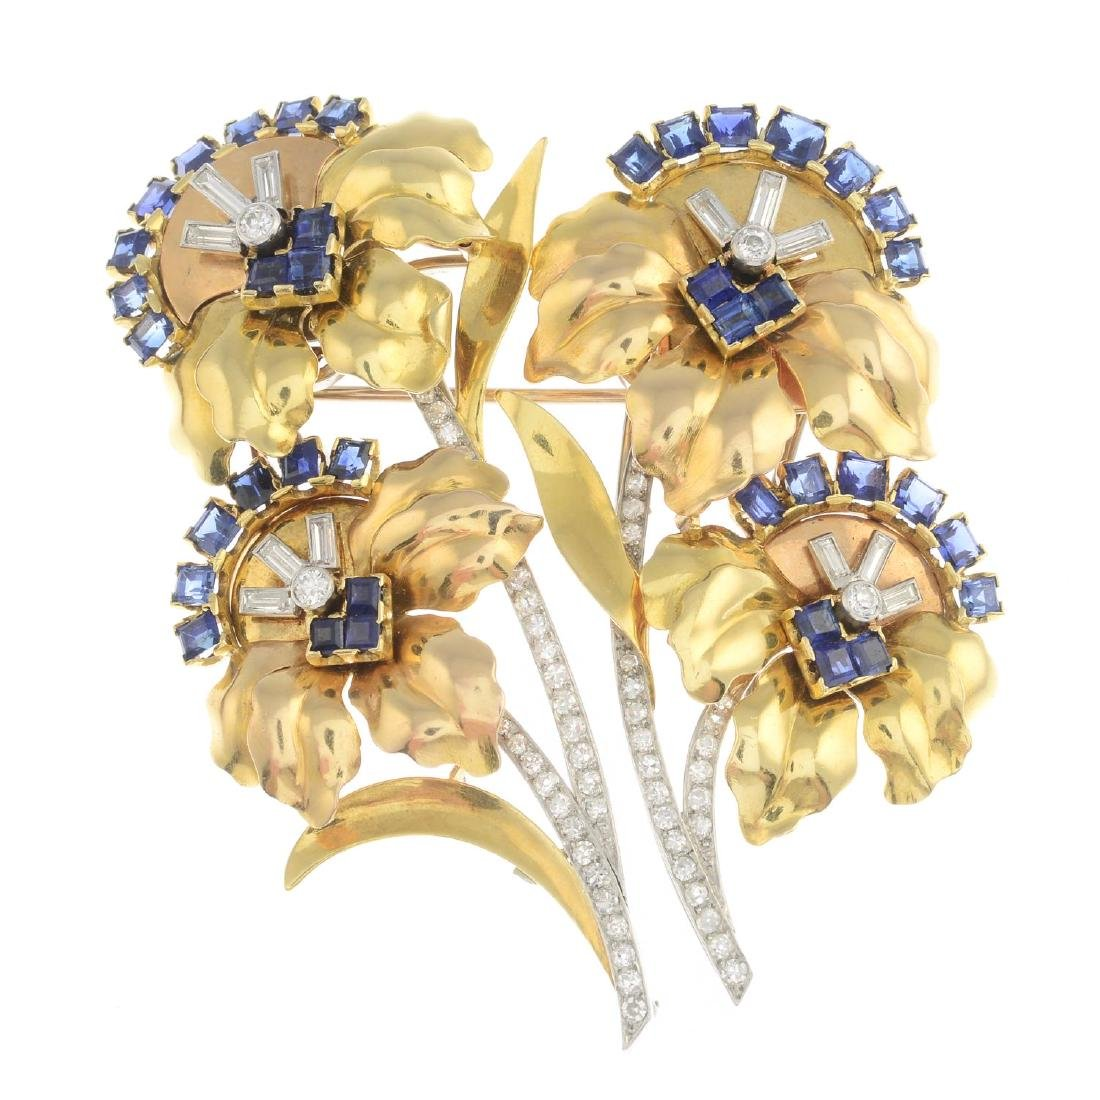 A 1940s 18ct gold and platinum, sapphire and diamond